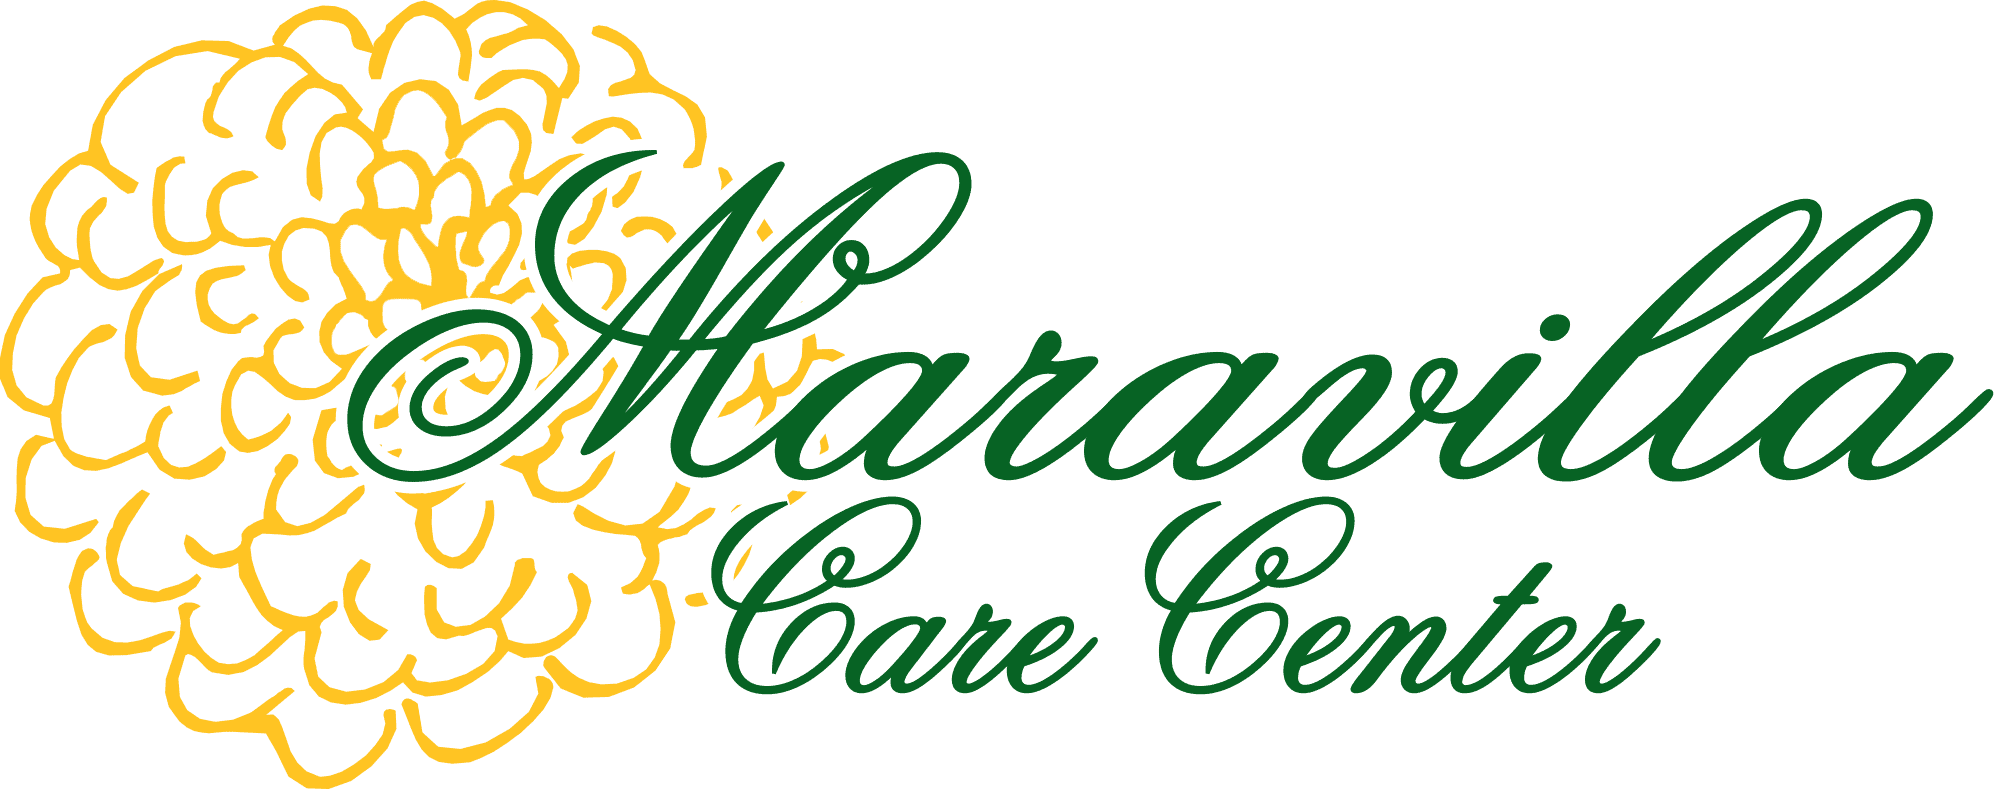 Maravilla Care Center [logo]